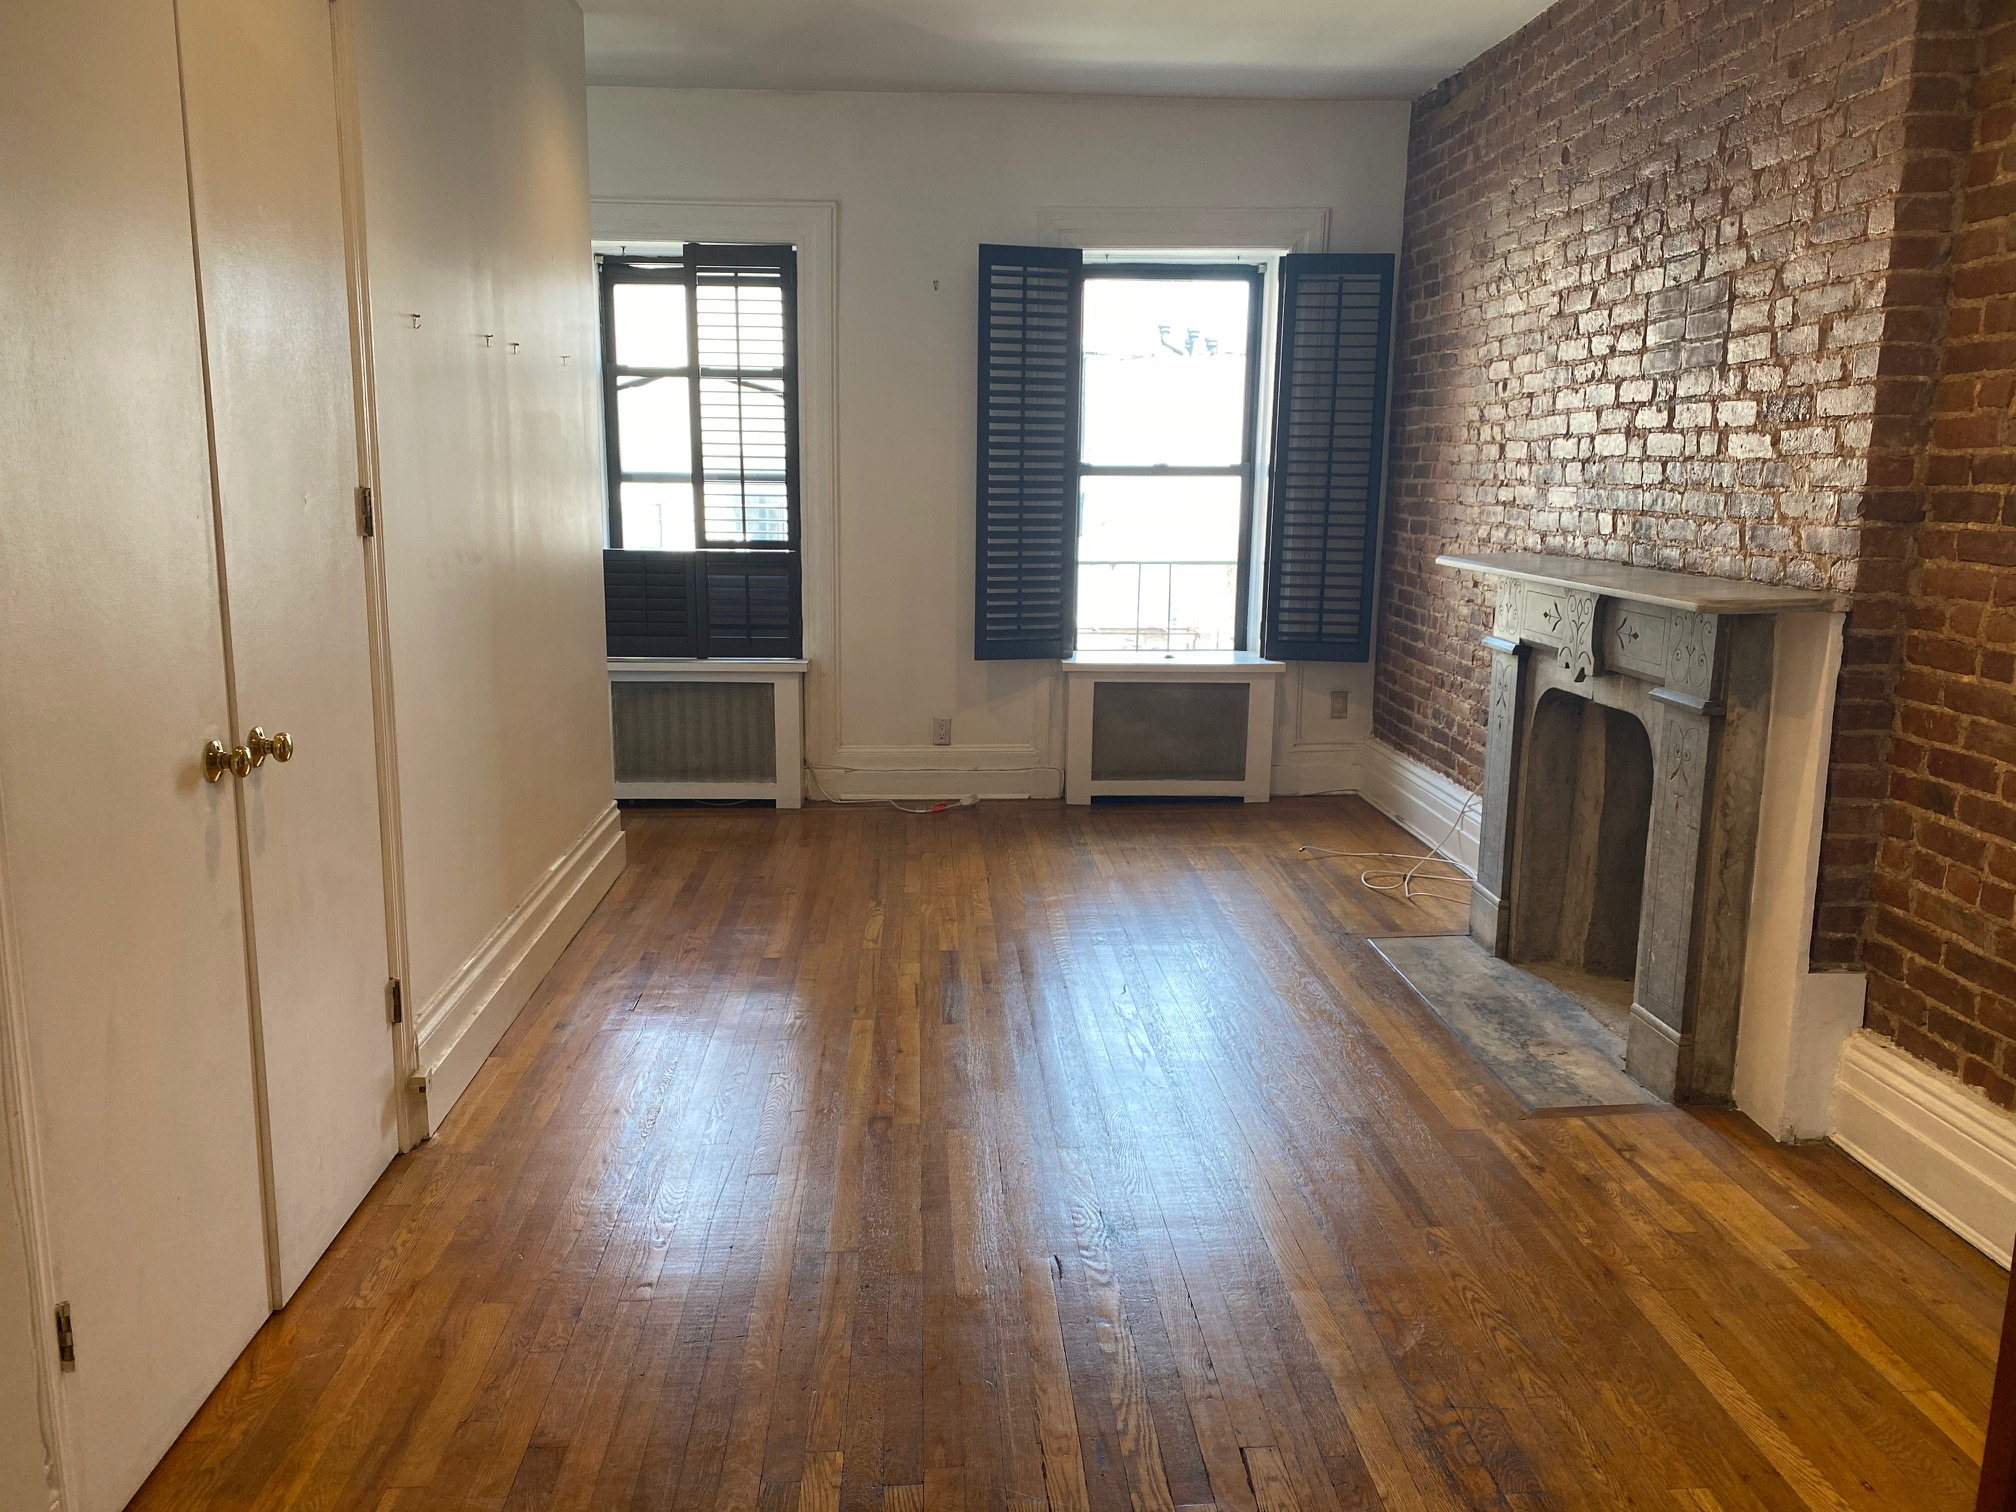 346 East 58th Street Sutton Place New York NY 10022